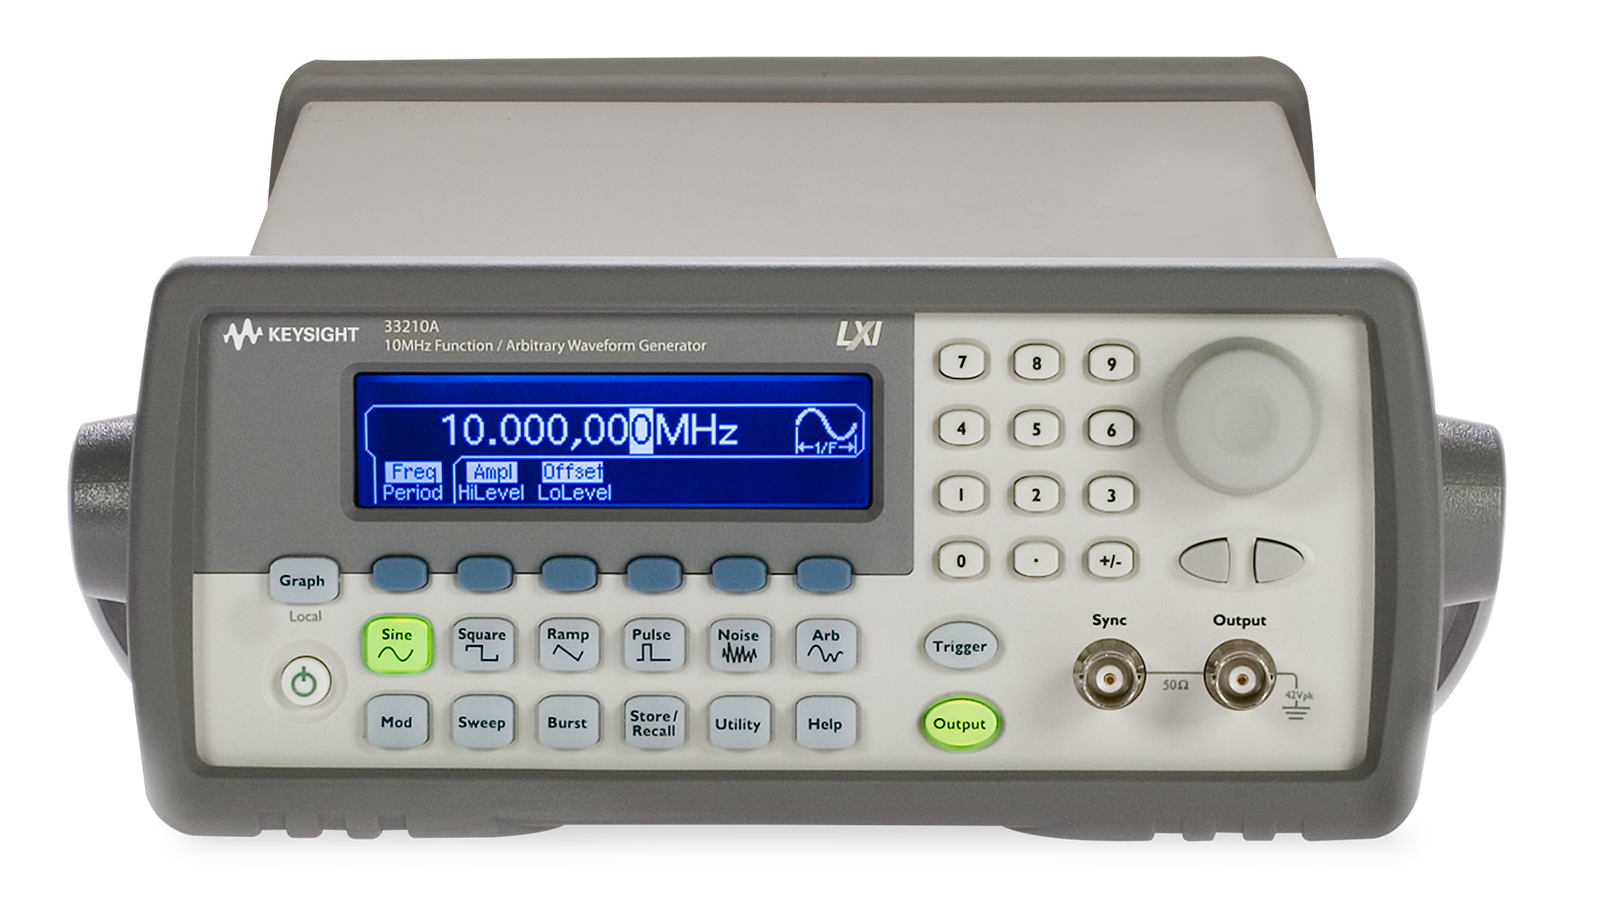 Keysight 32210a  – Top front view